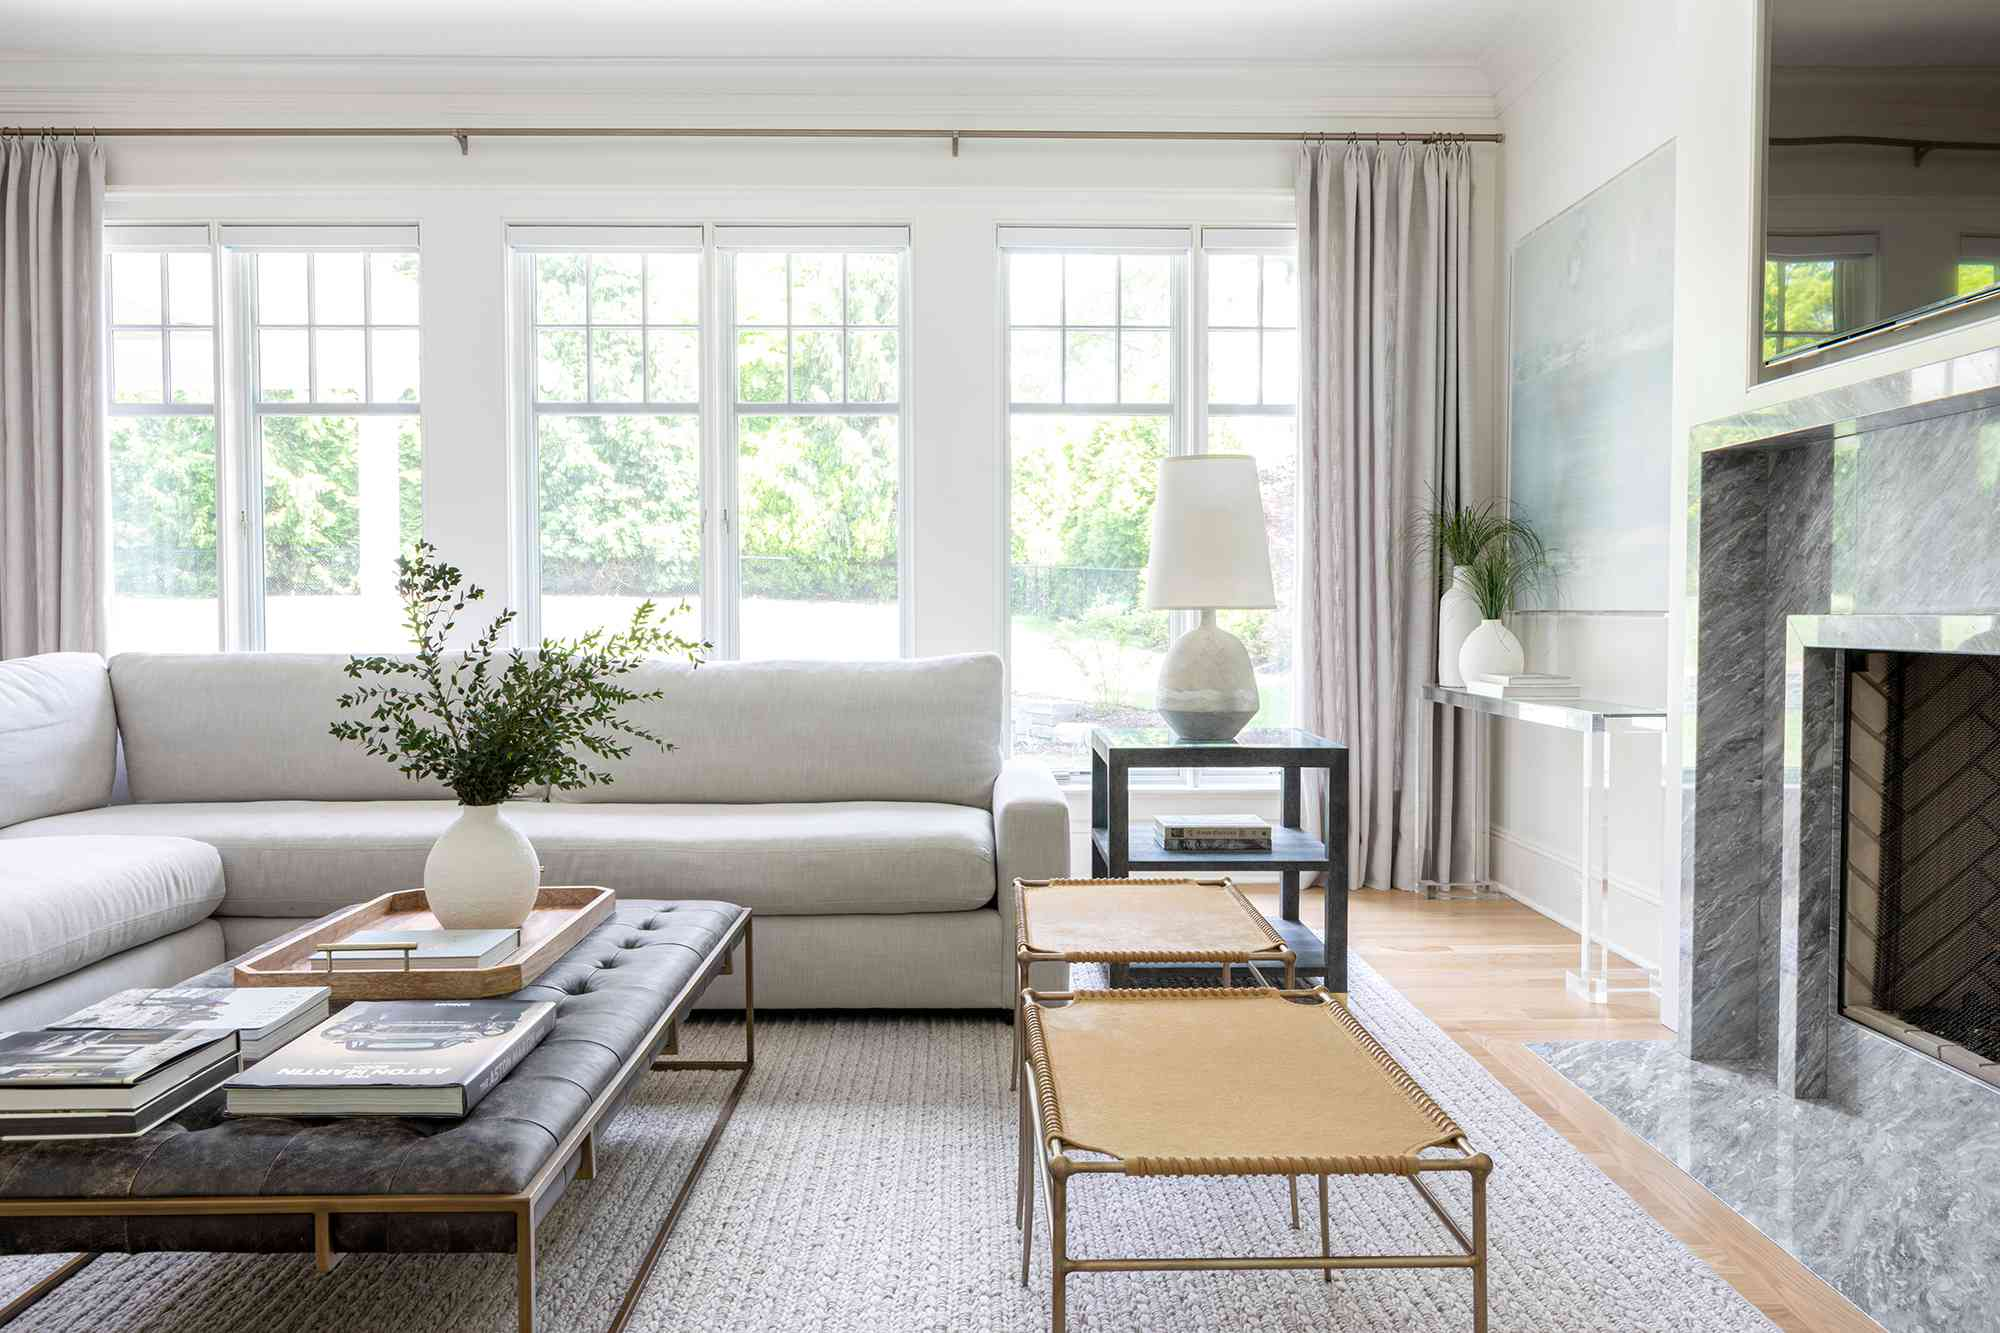 new jersey home tour - living room